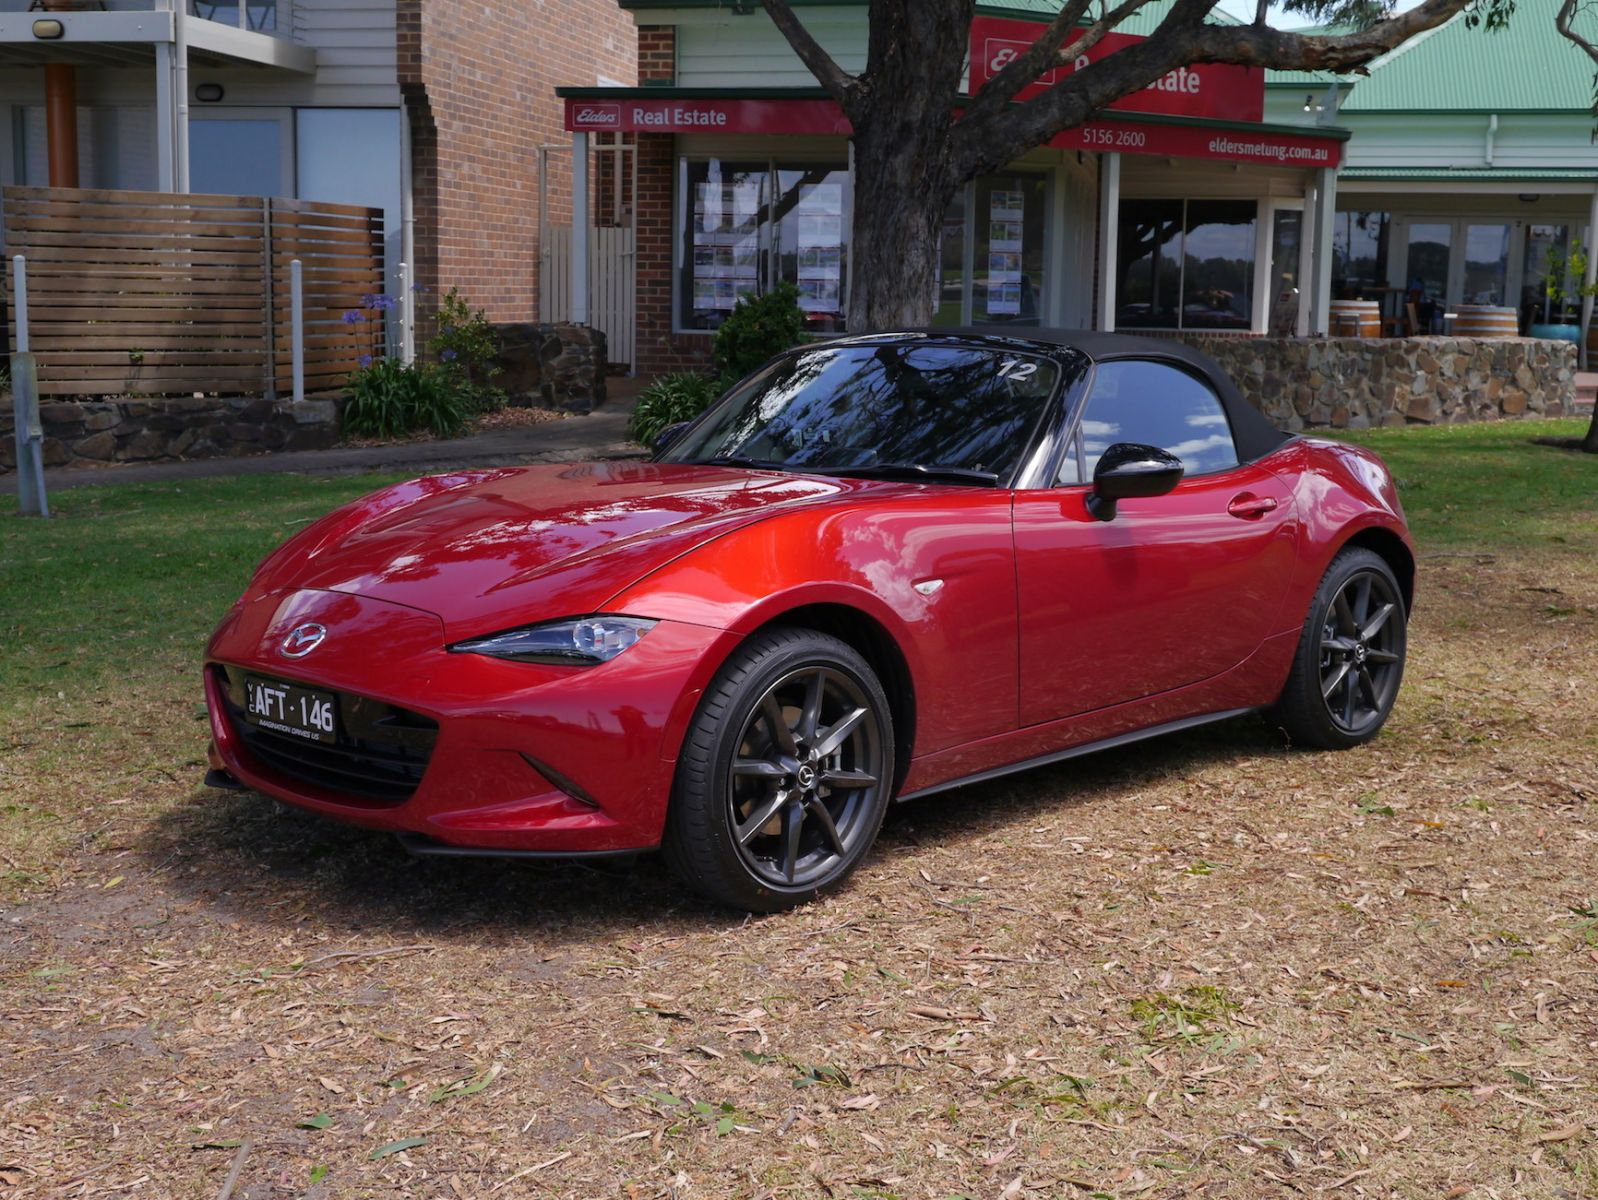 Mazda MX-5 2.0 Litre Review | Roadster And Roadster GT - More Grunt For Mazda's Pint-Sized Drop-Top